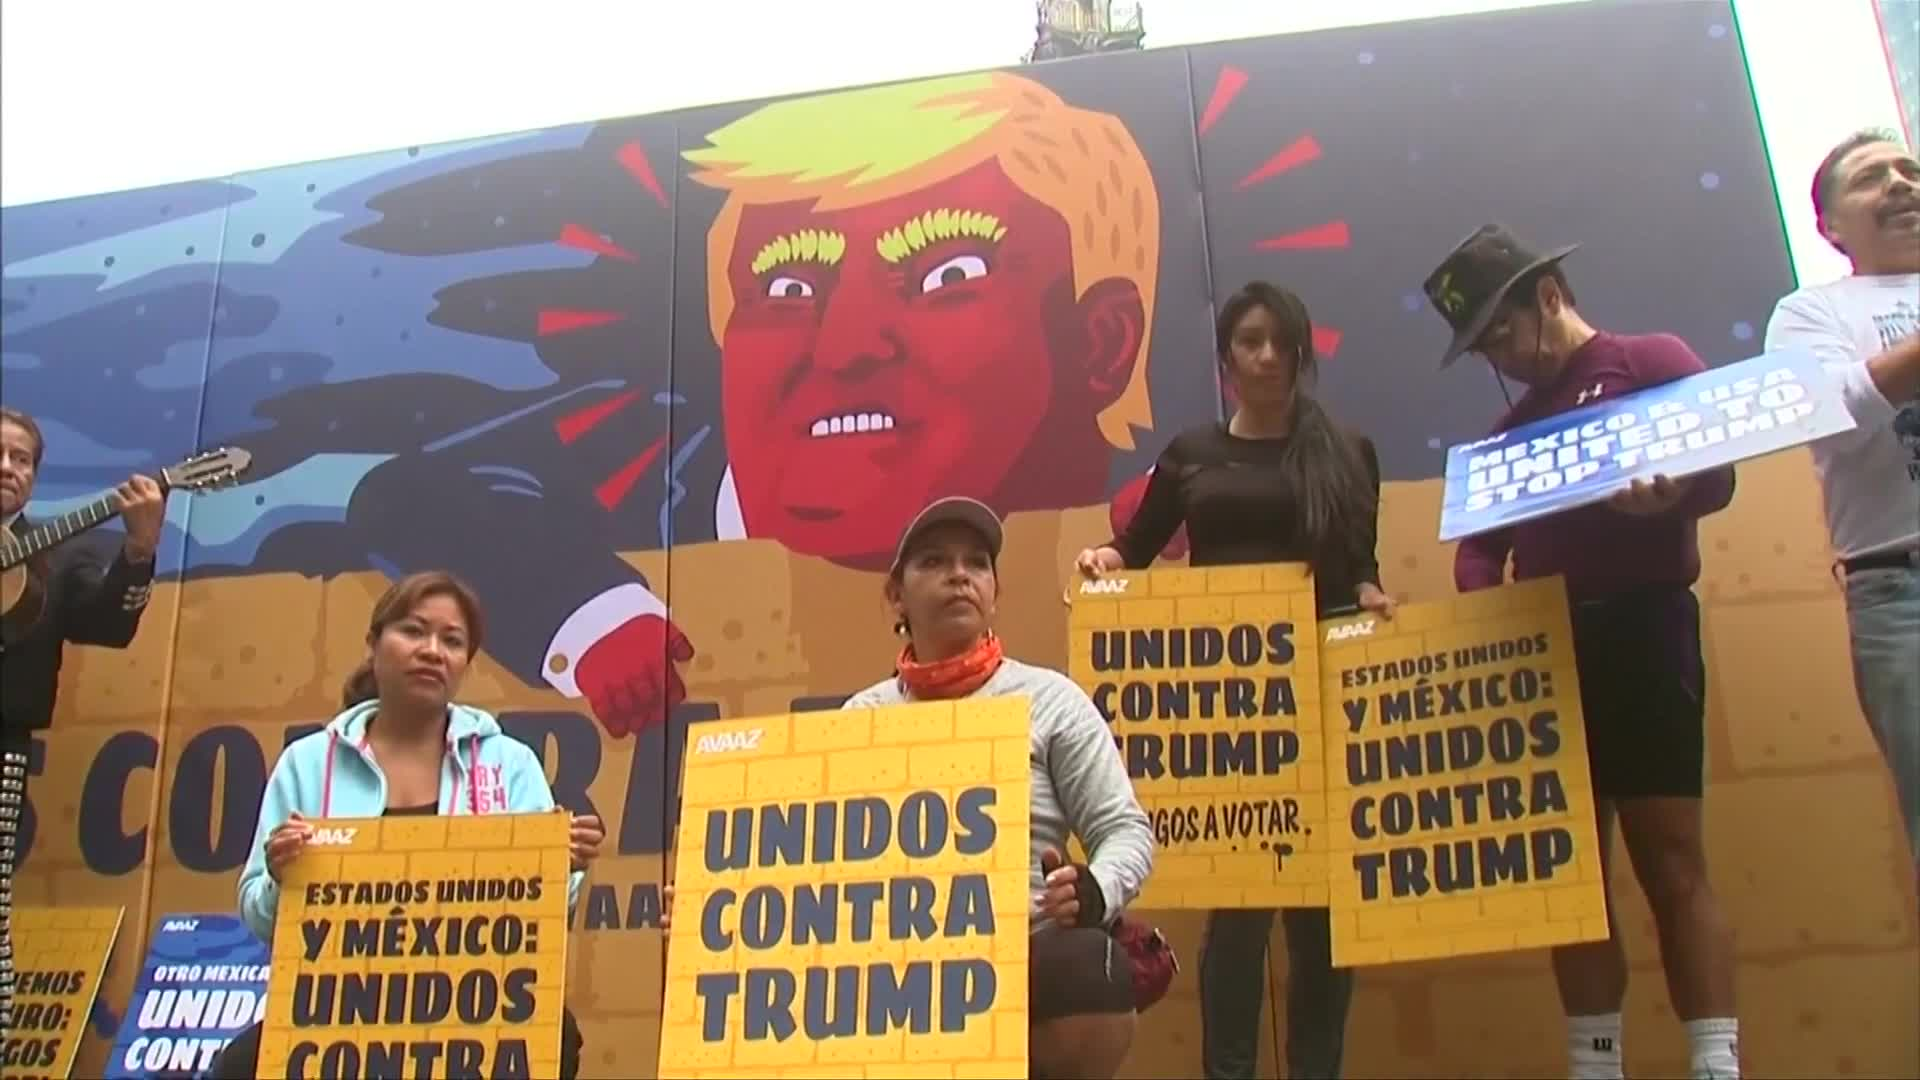 Anti-Trump campaign hits Mexico City